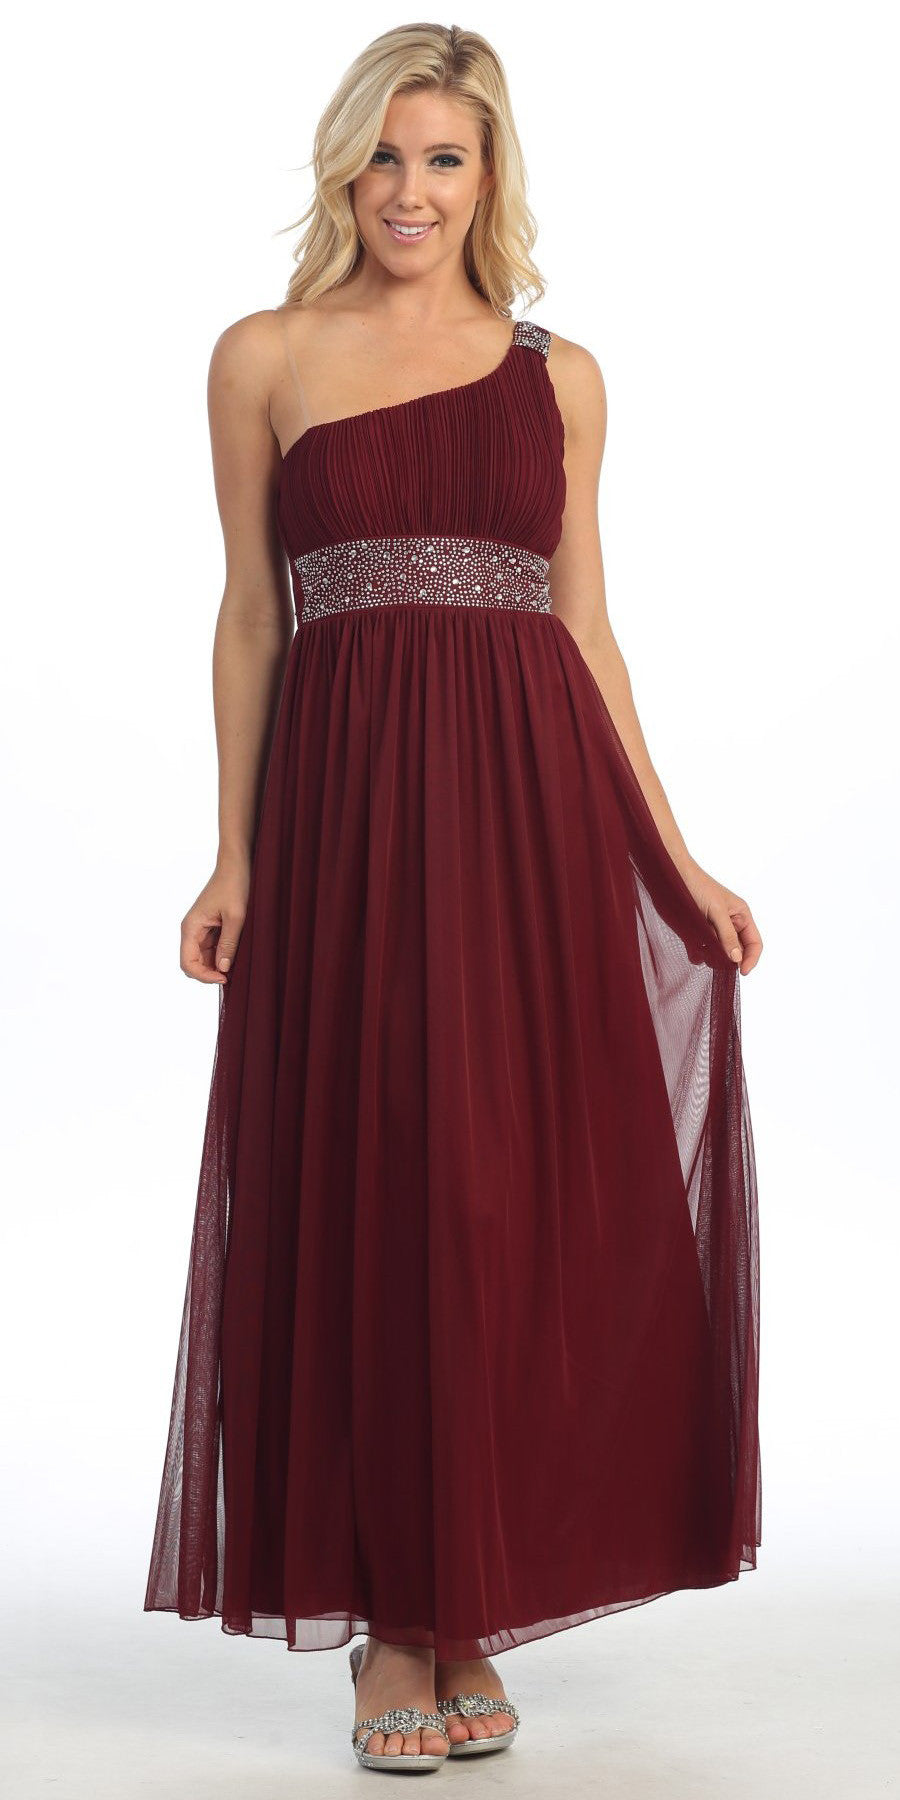 Ankle Length Burgundy Maternity Dress One Shoulder Chiffon Empire